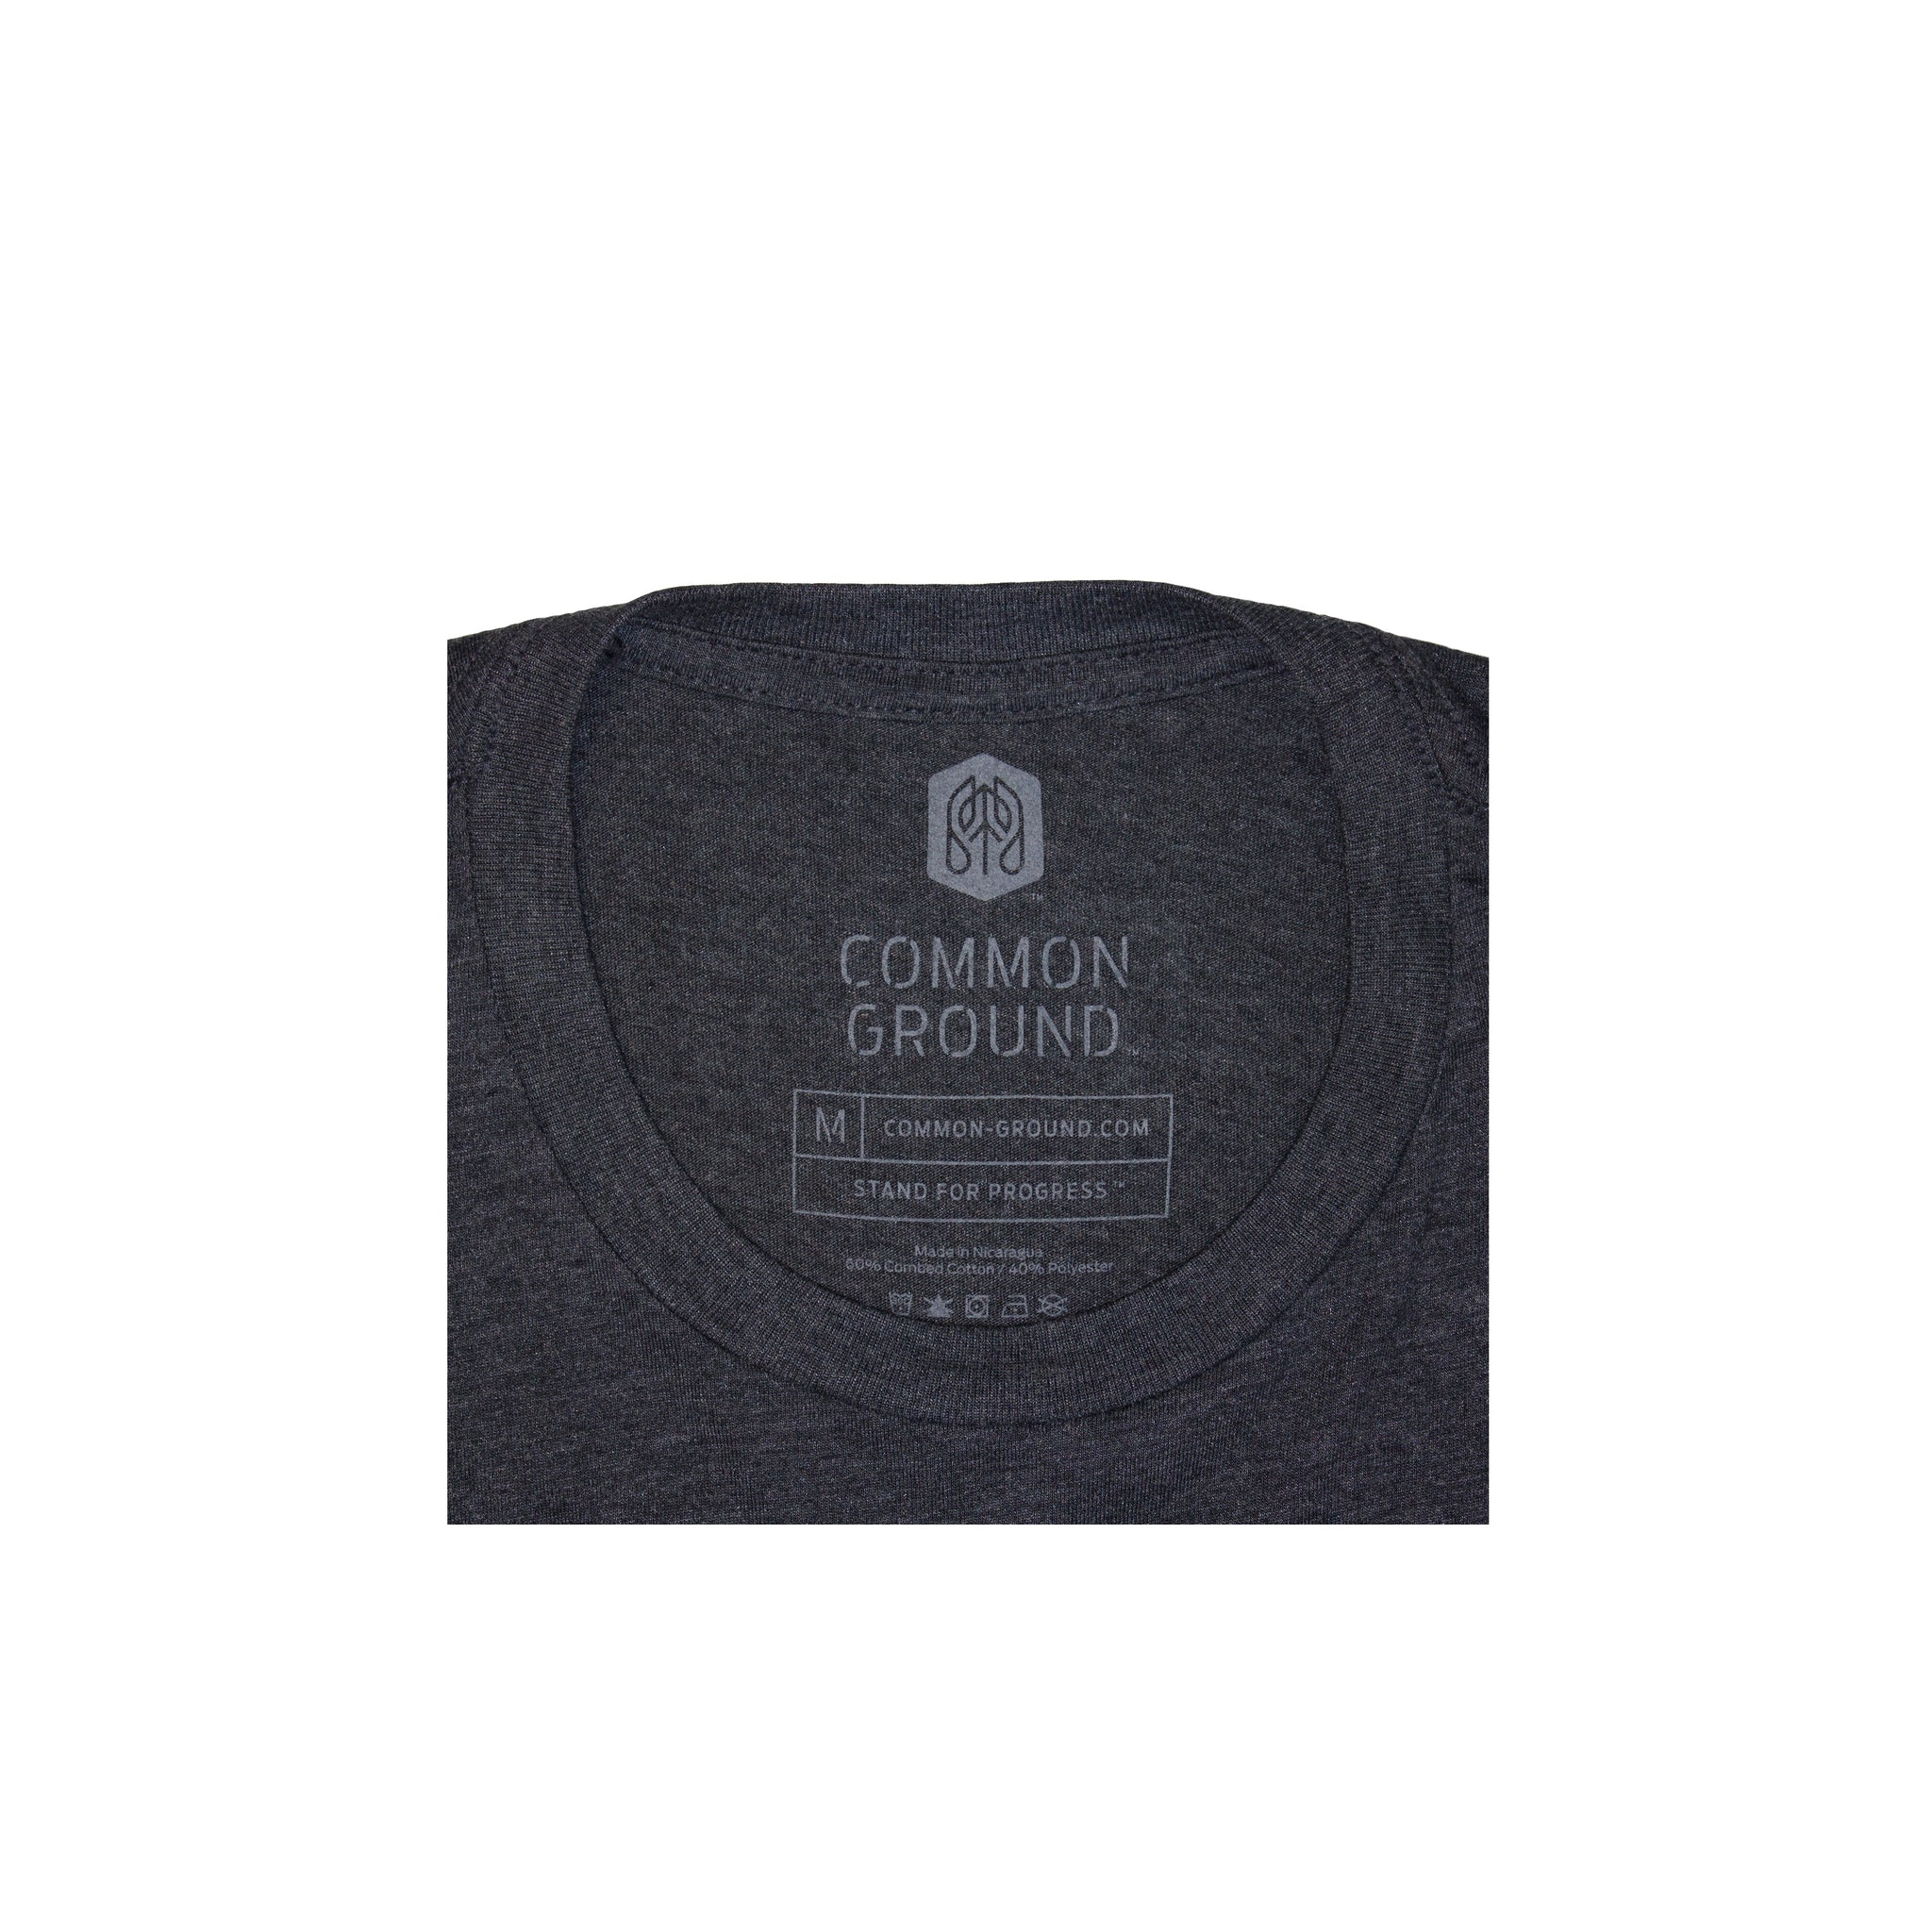 Charcoal - Common Ground T shirt Neck Tag View